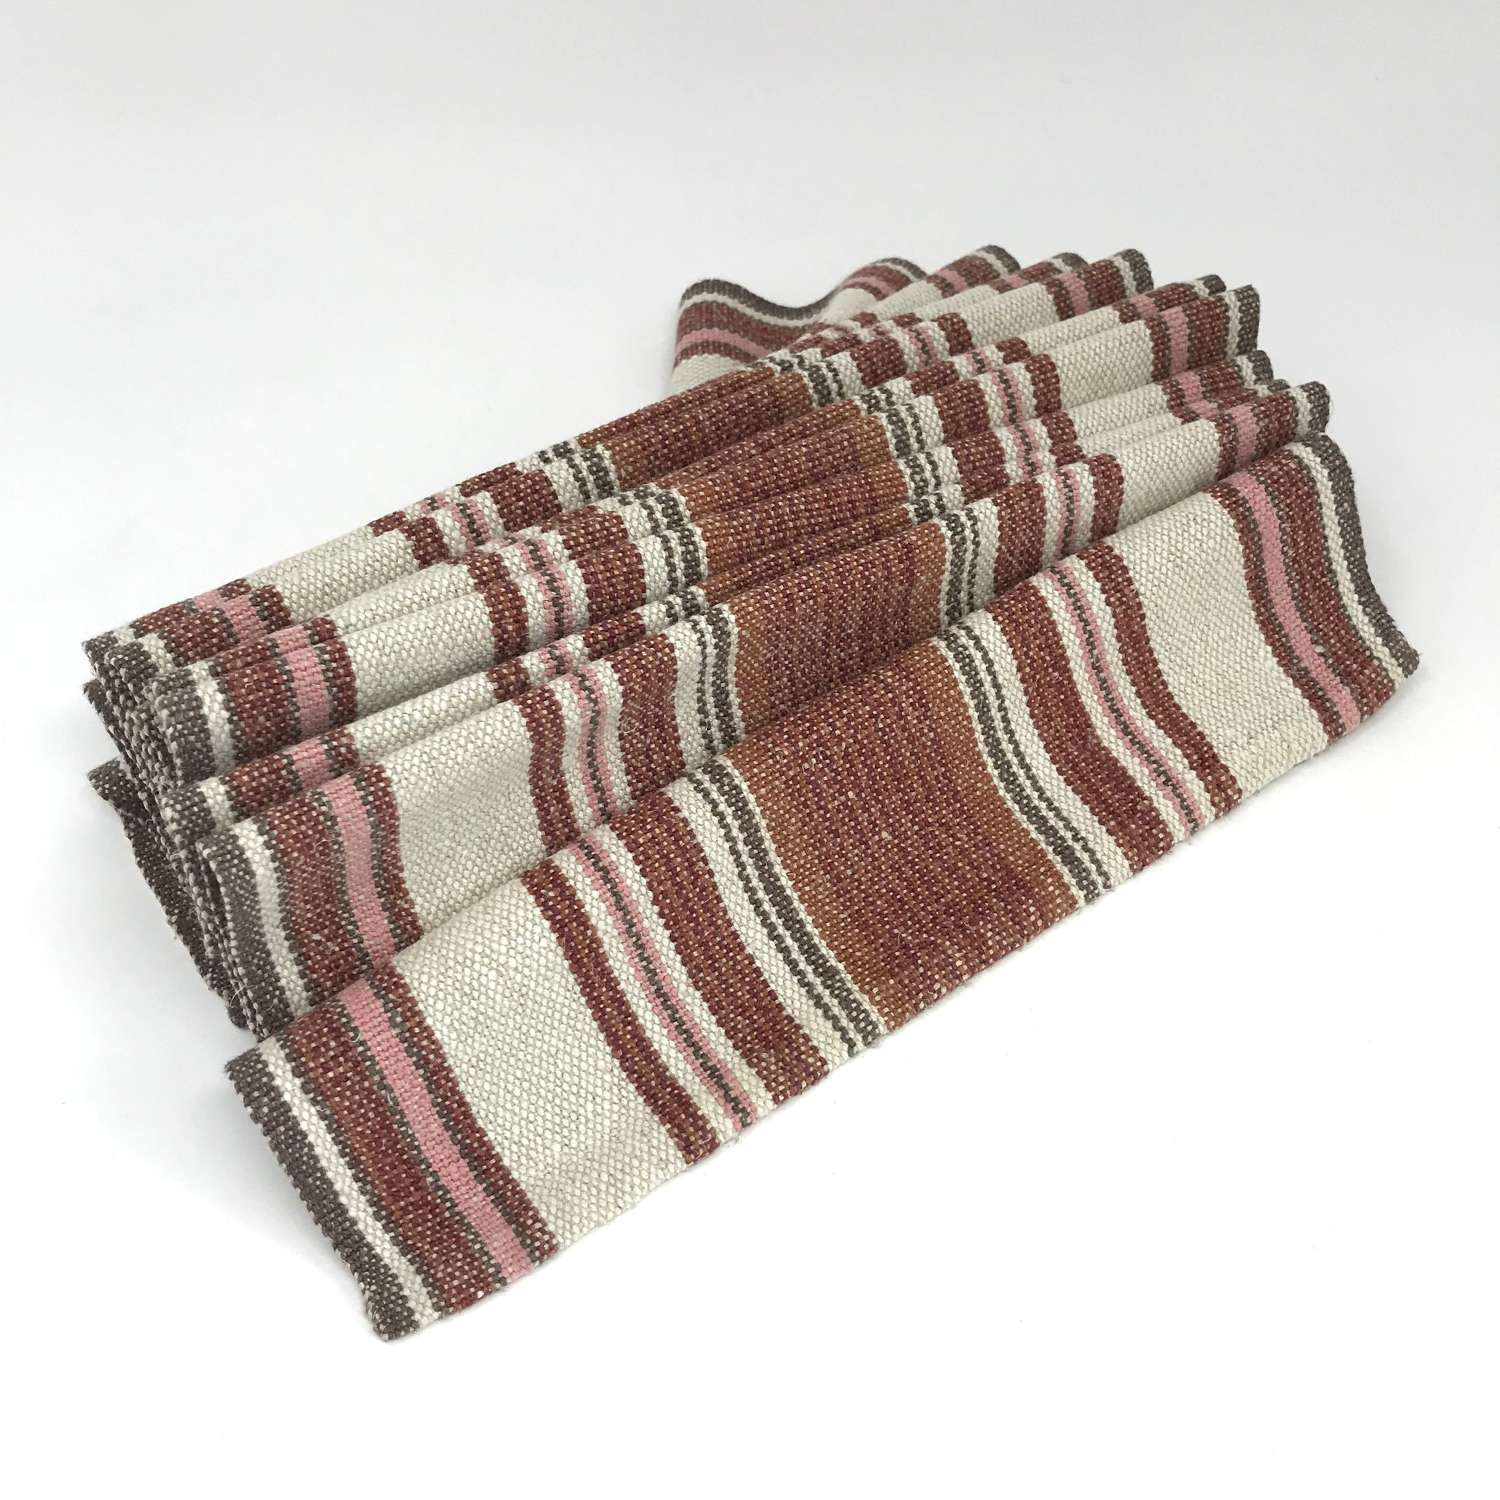 Swedish Handwoven Linen Table Runner in Tan and Pink 1970s